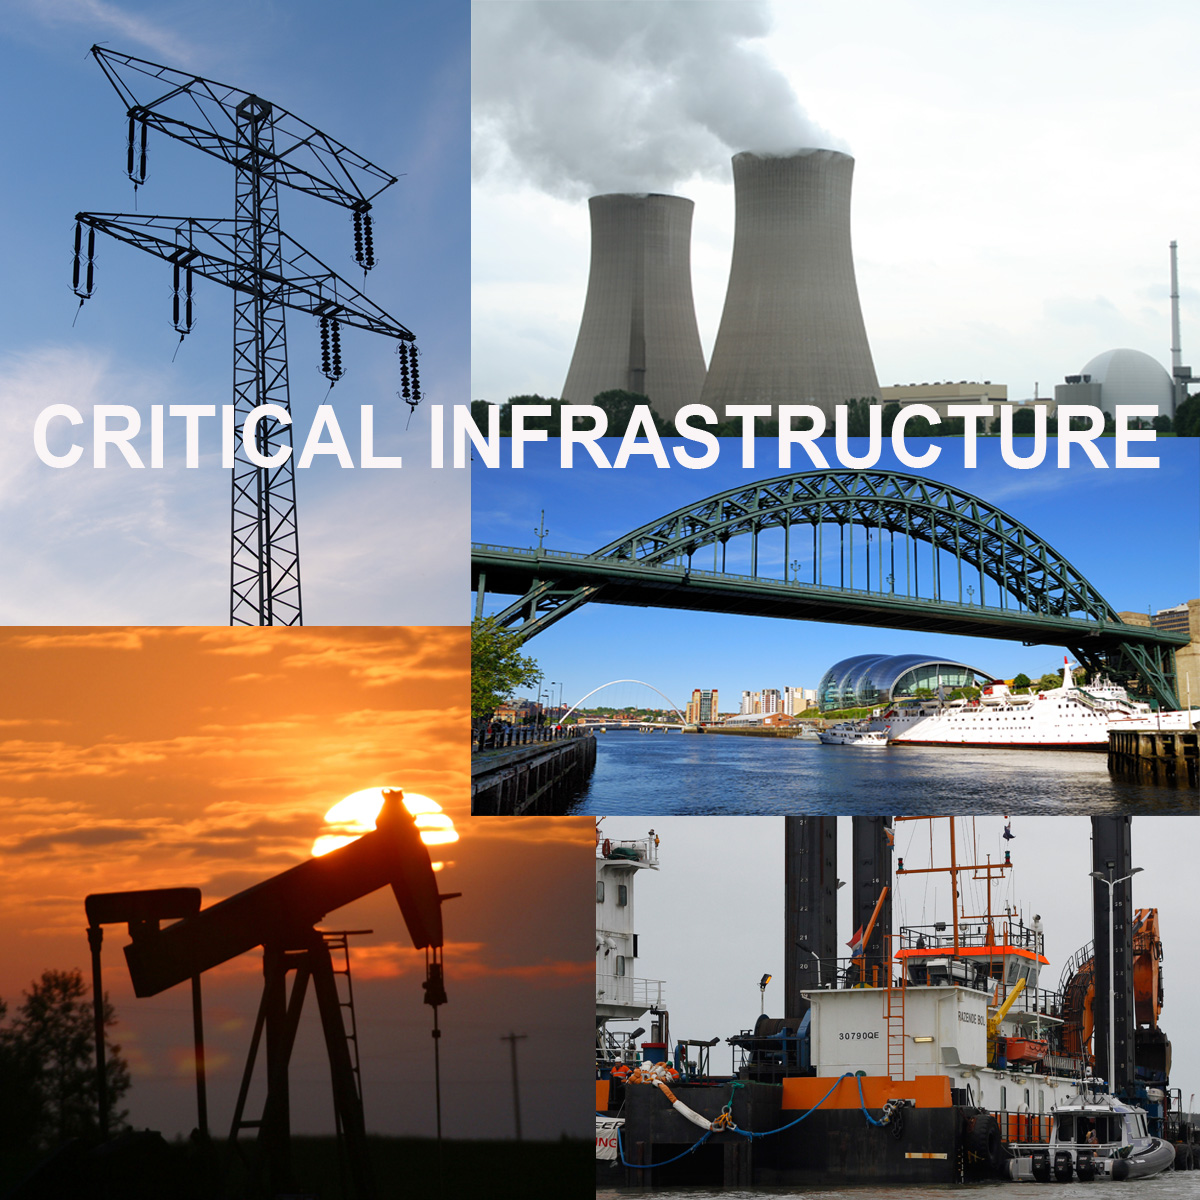 critical infrastructure Critical infrastructure critical infrastructure is a term used by governments to describe assets that are essential for the functioning of a society and economy.